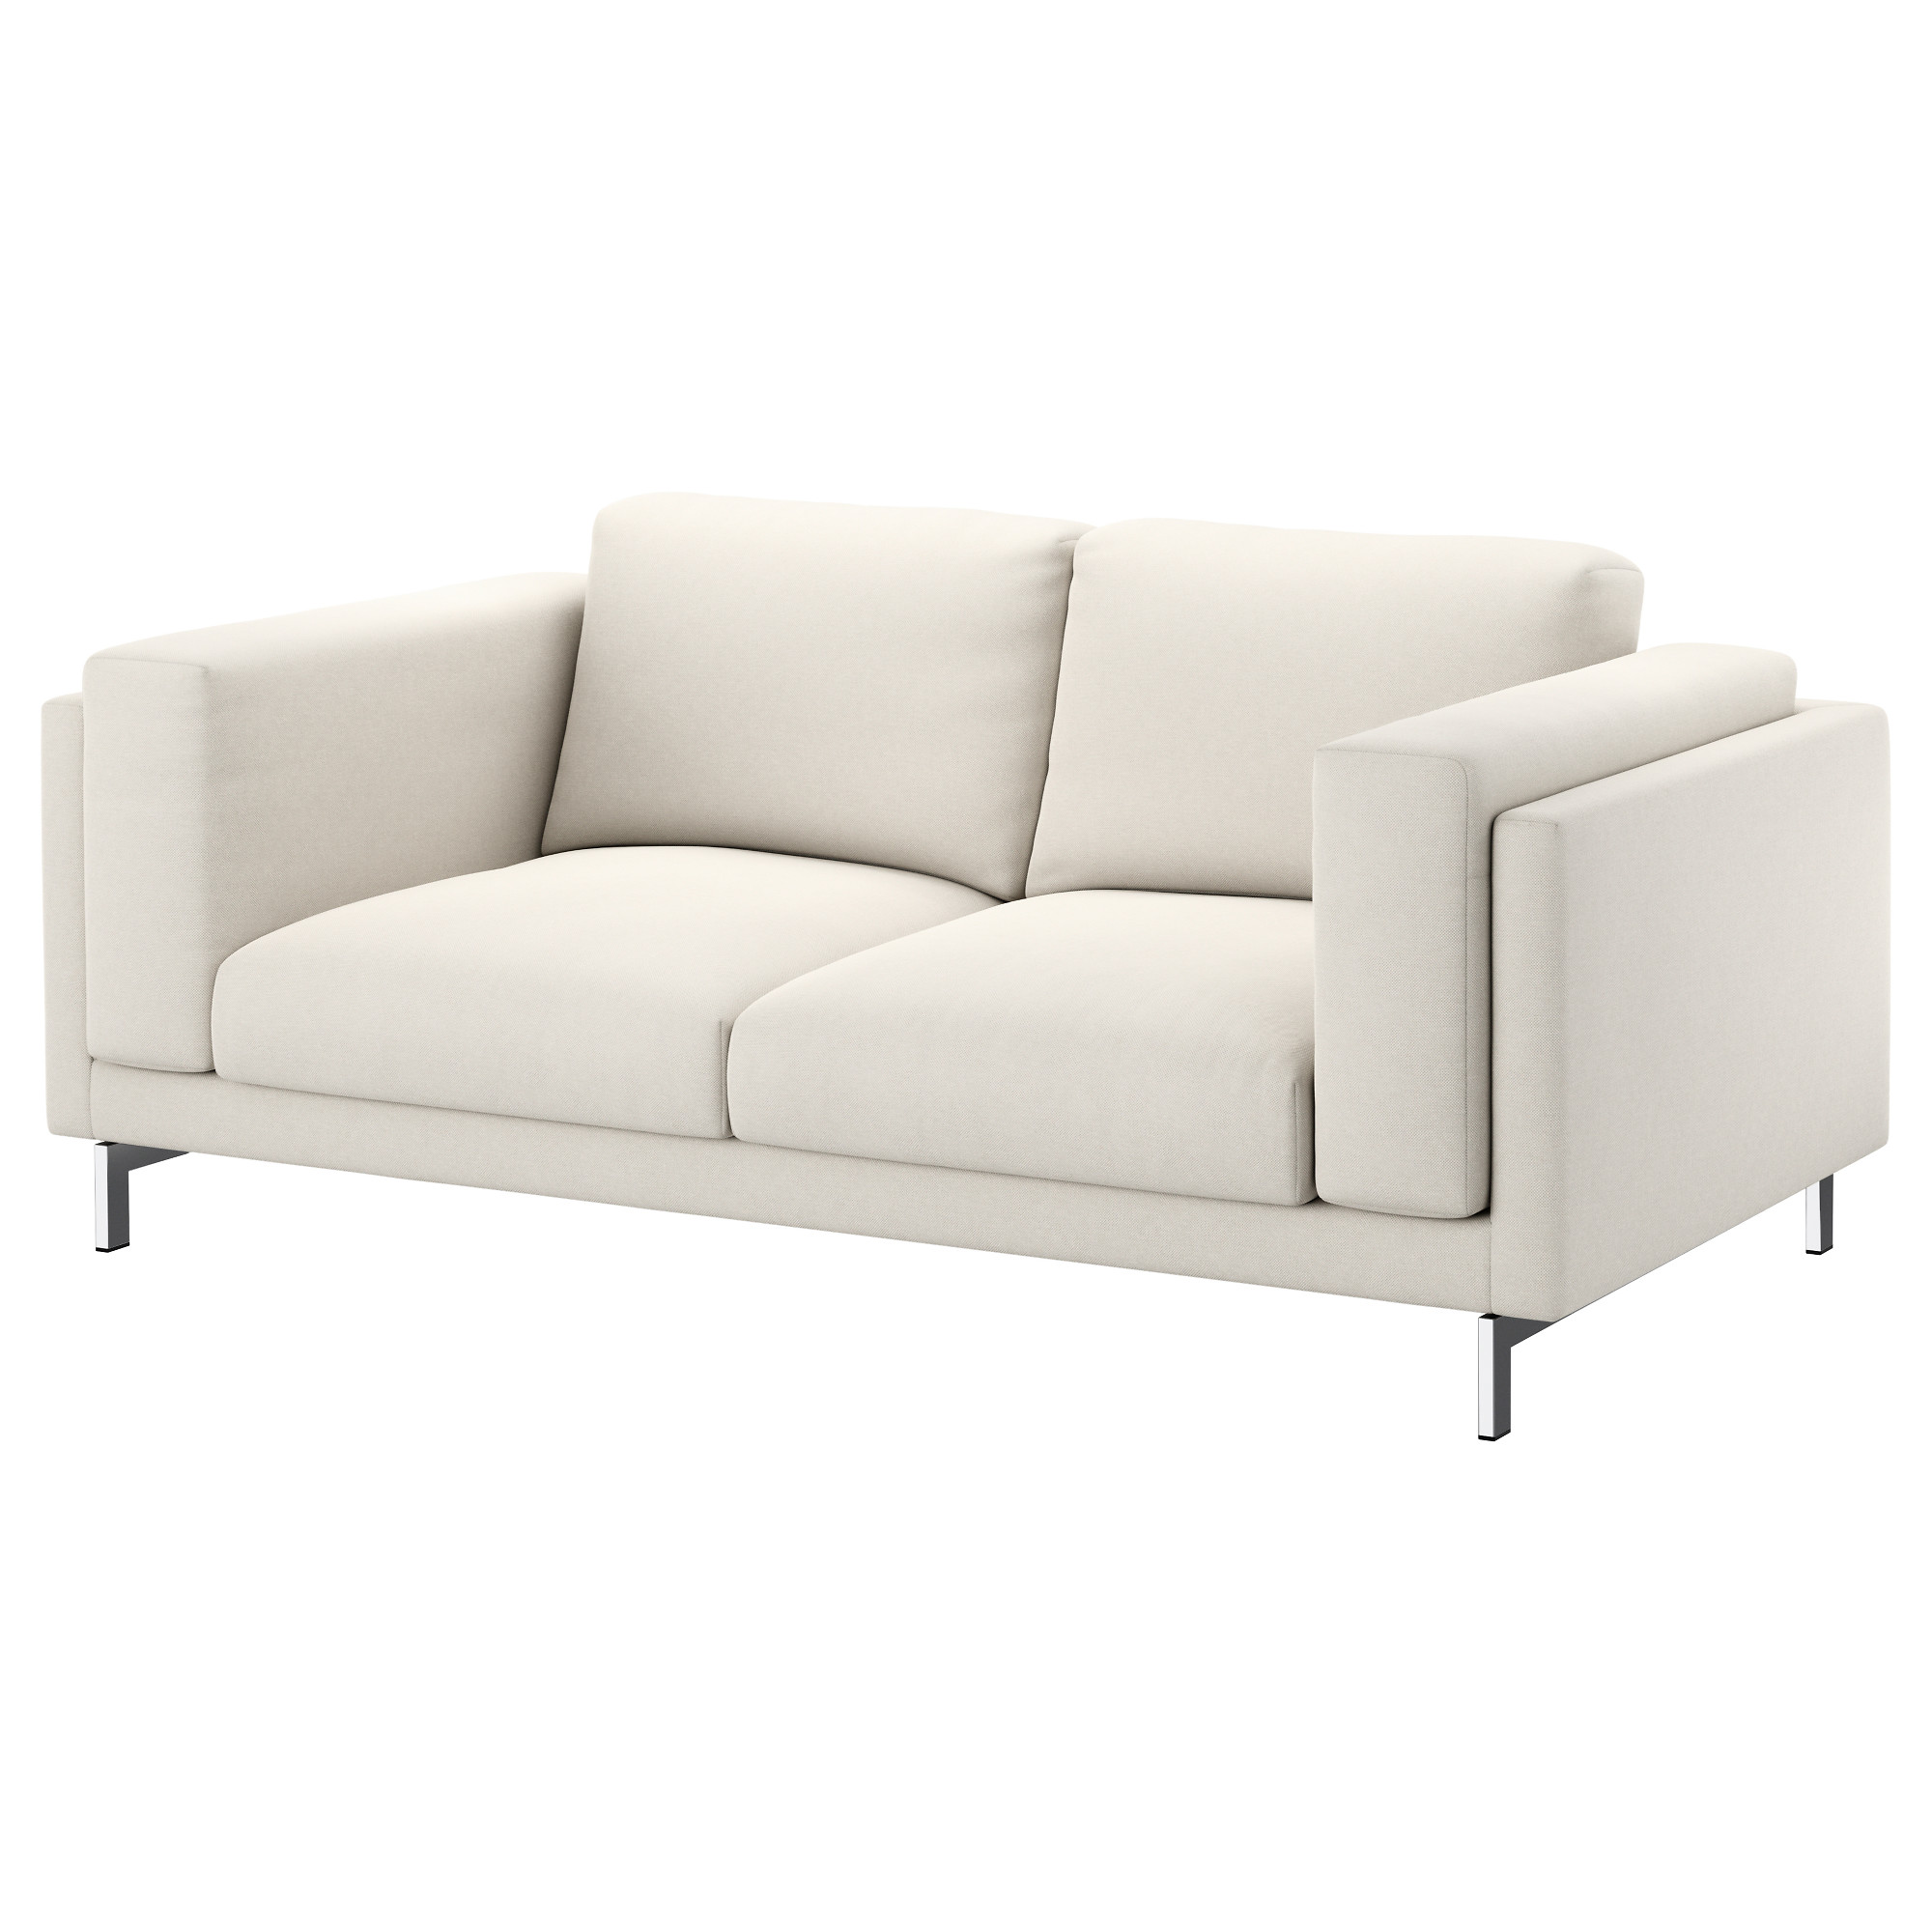 place tsc ideas los styles loveseat pany by pinterest size on sofa futon of design beautiful unique irving sofas abc new the angeles pin full home